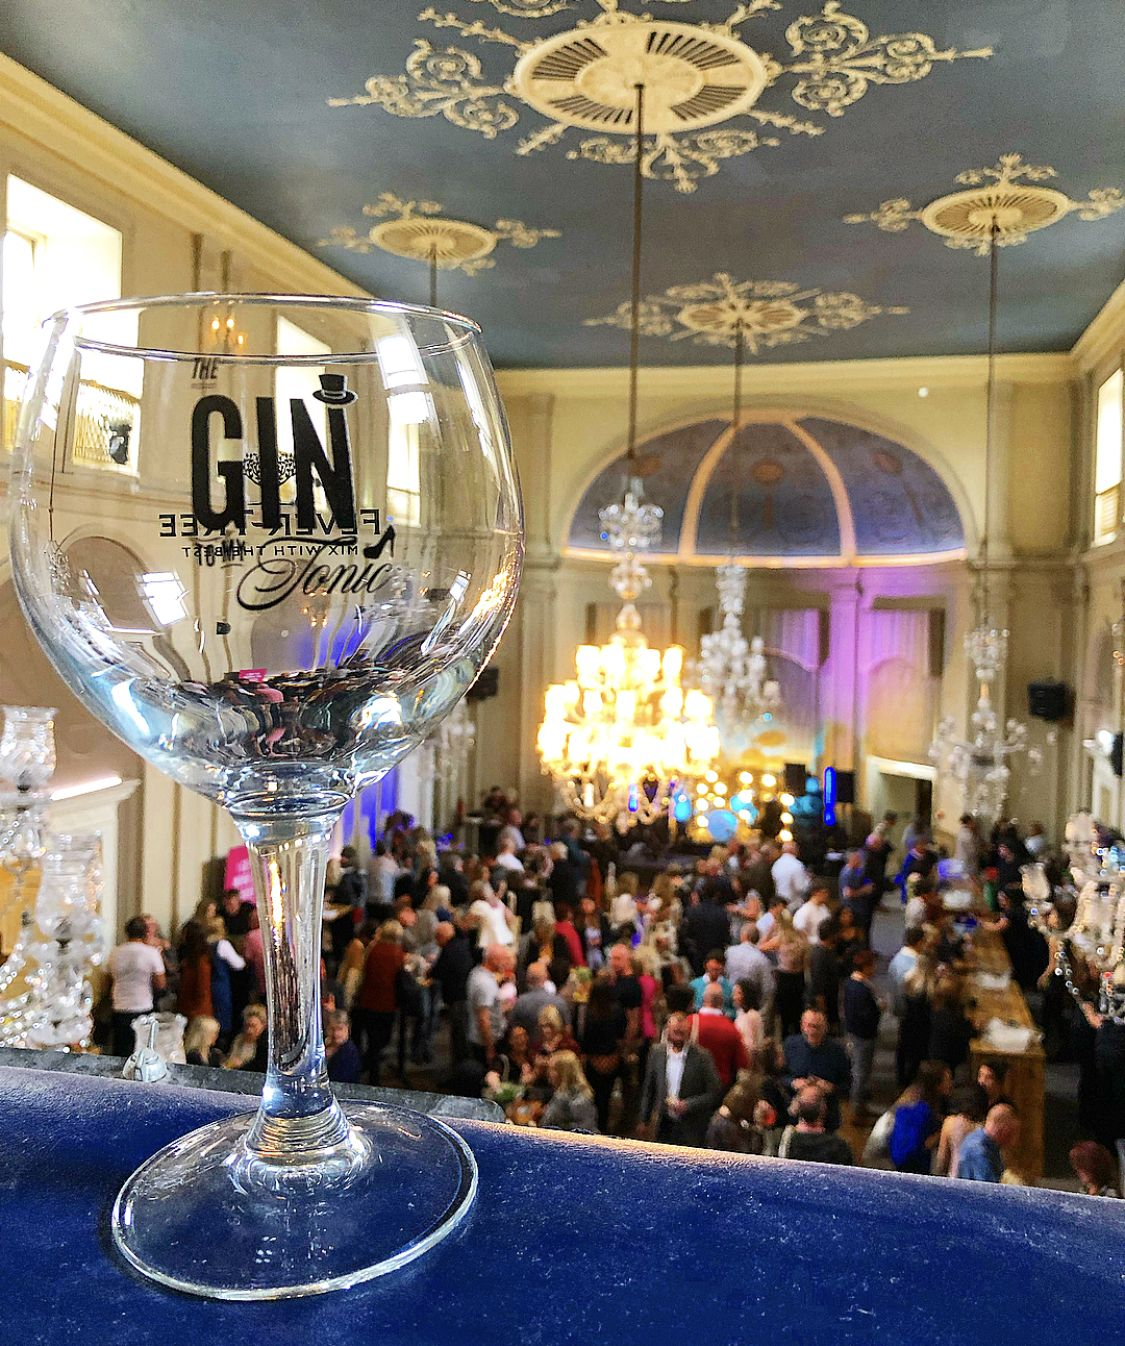 The Gin To My Tonic Branded Gin Copa Glass at a gin festival with people in the background